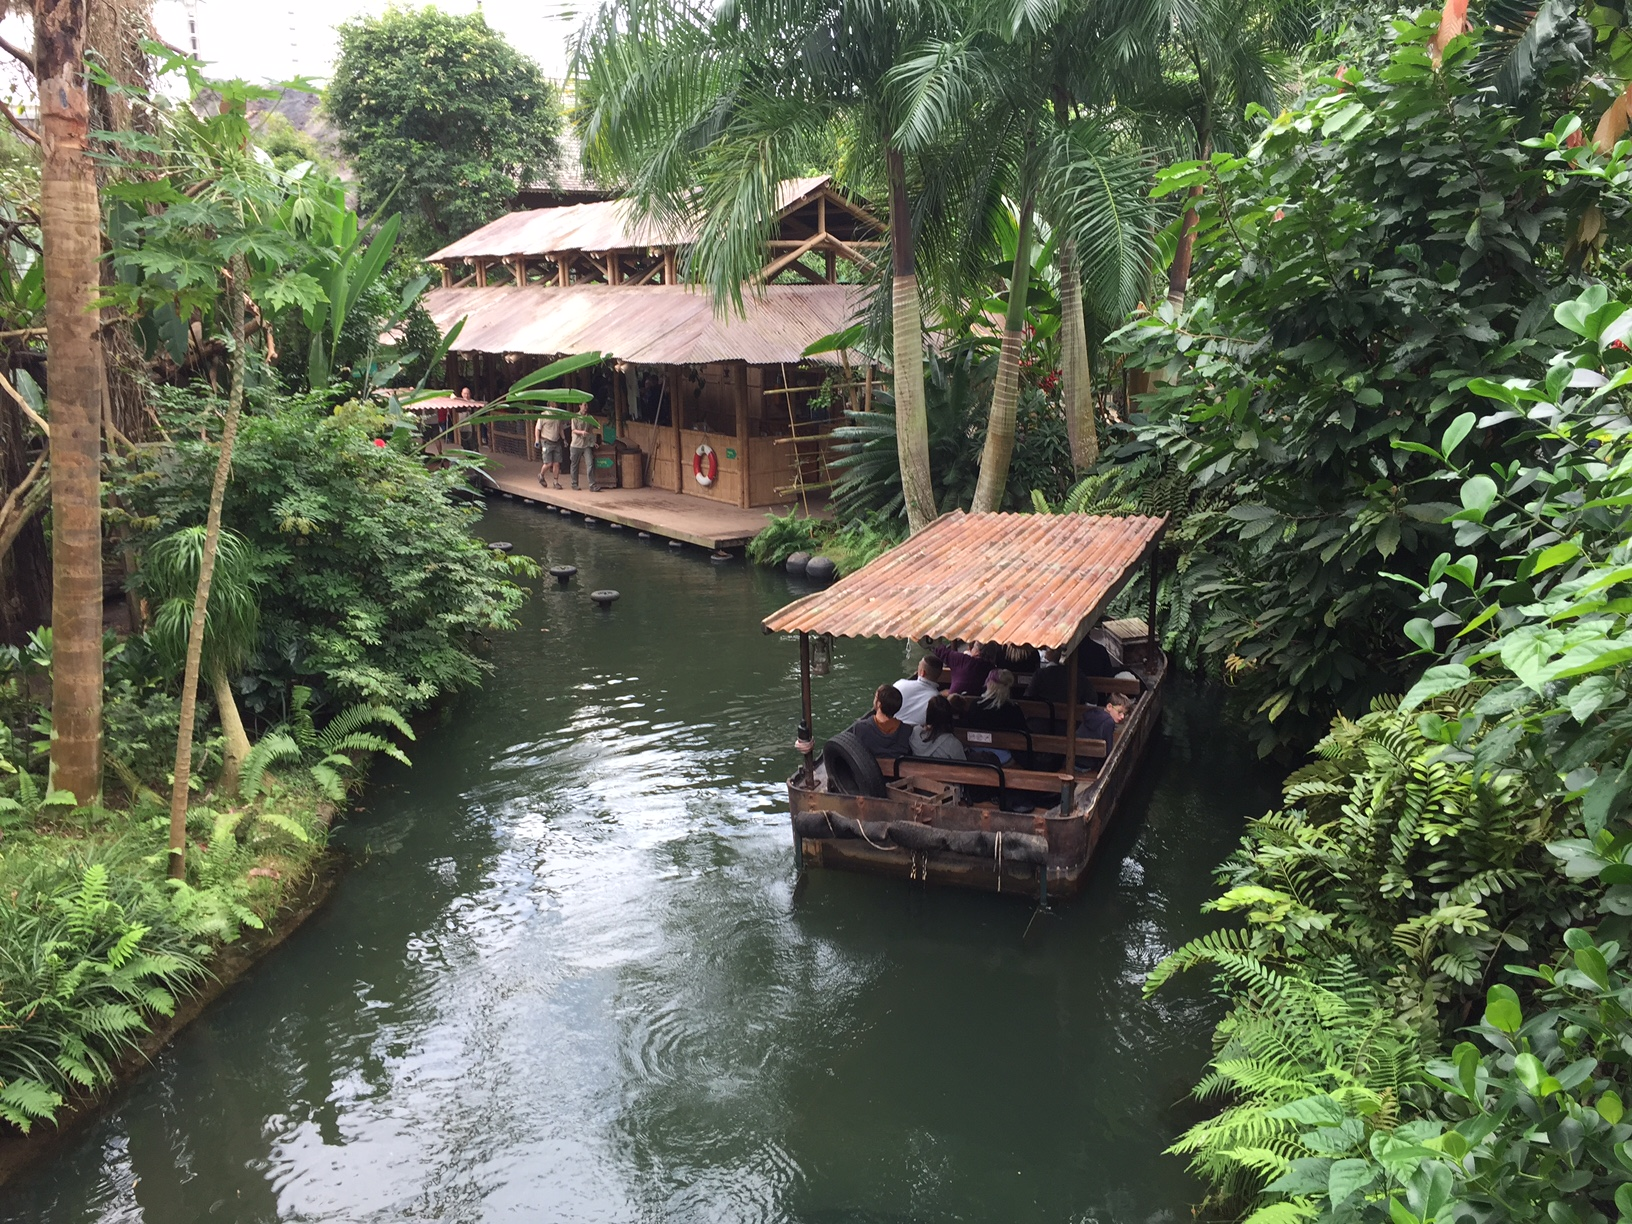 Gondwanaland will bring you fascinating tropical experience